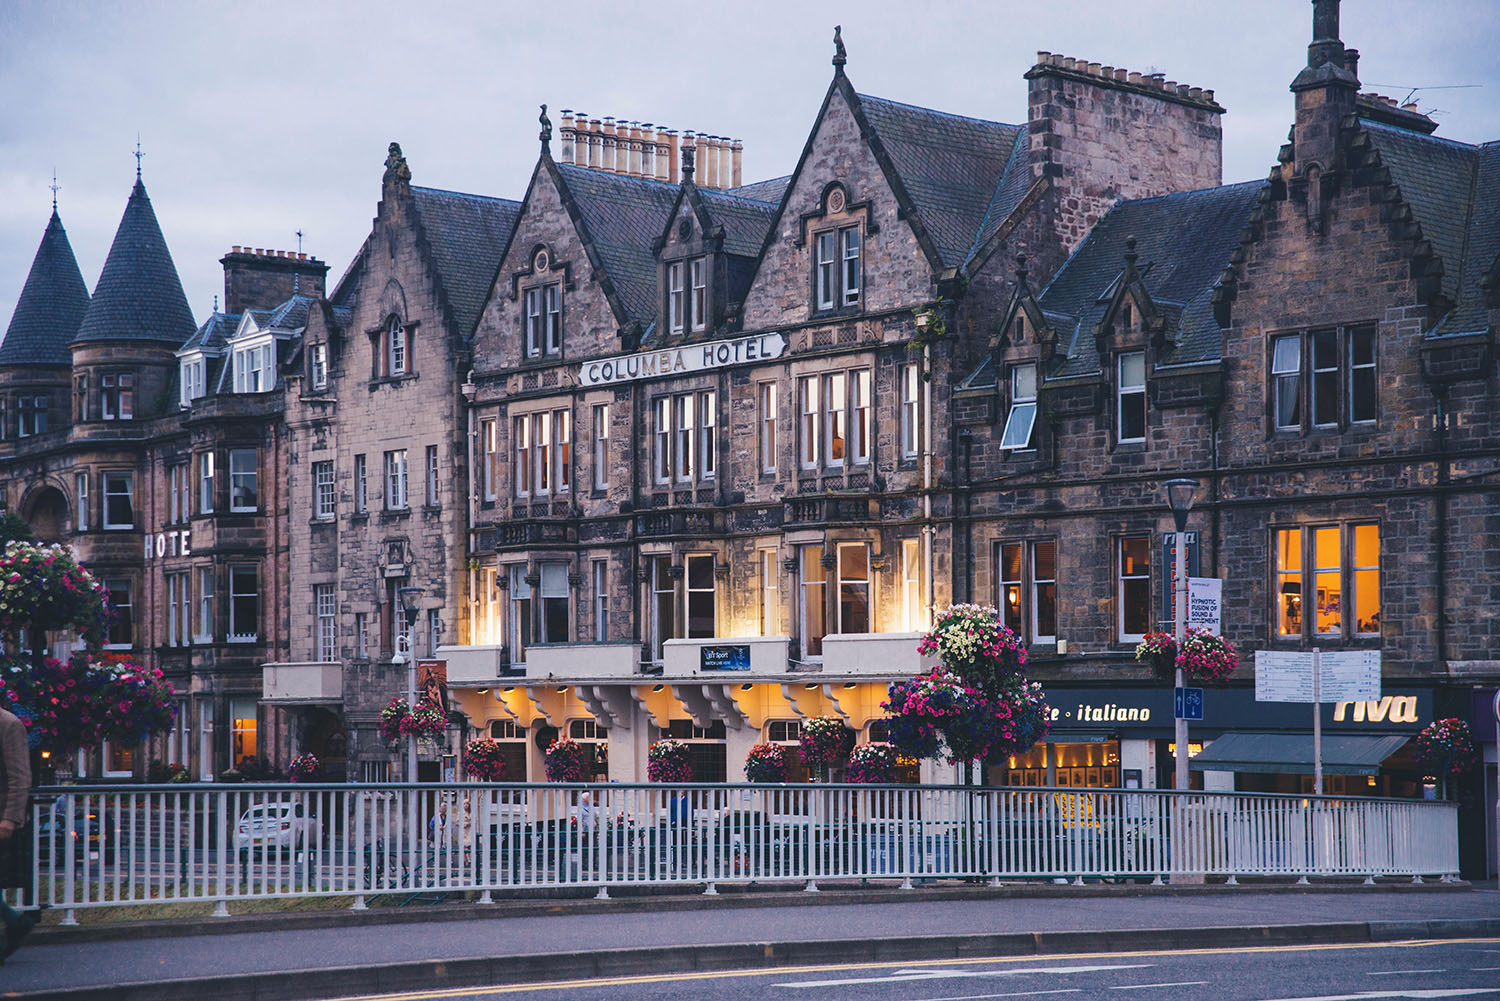 View across the road - Columba Hotel in Inverness